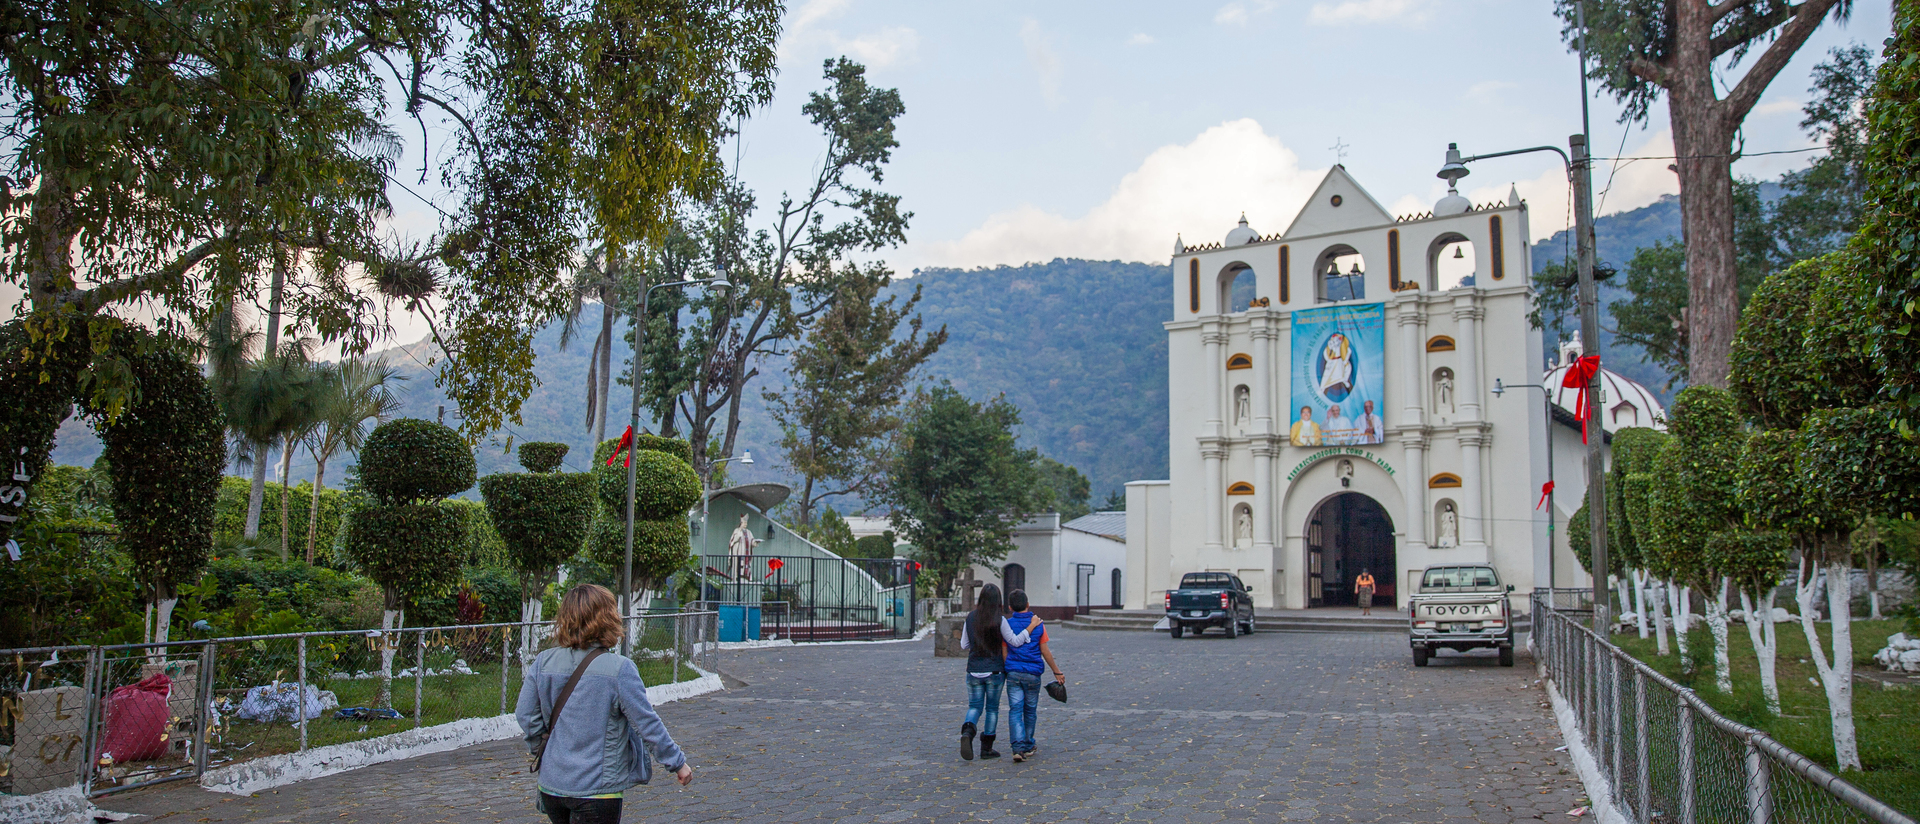 UW-Eau Claire student in Guatemala for cultural immersion experience.